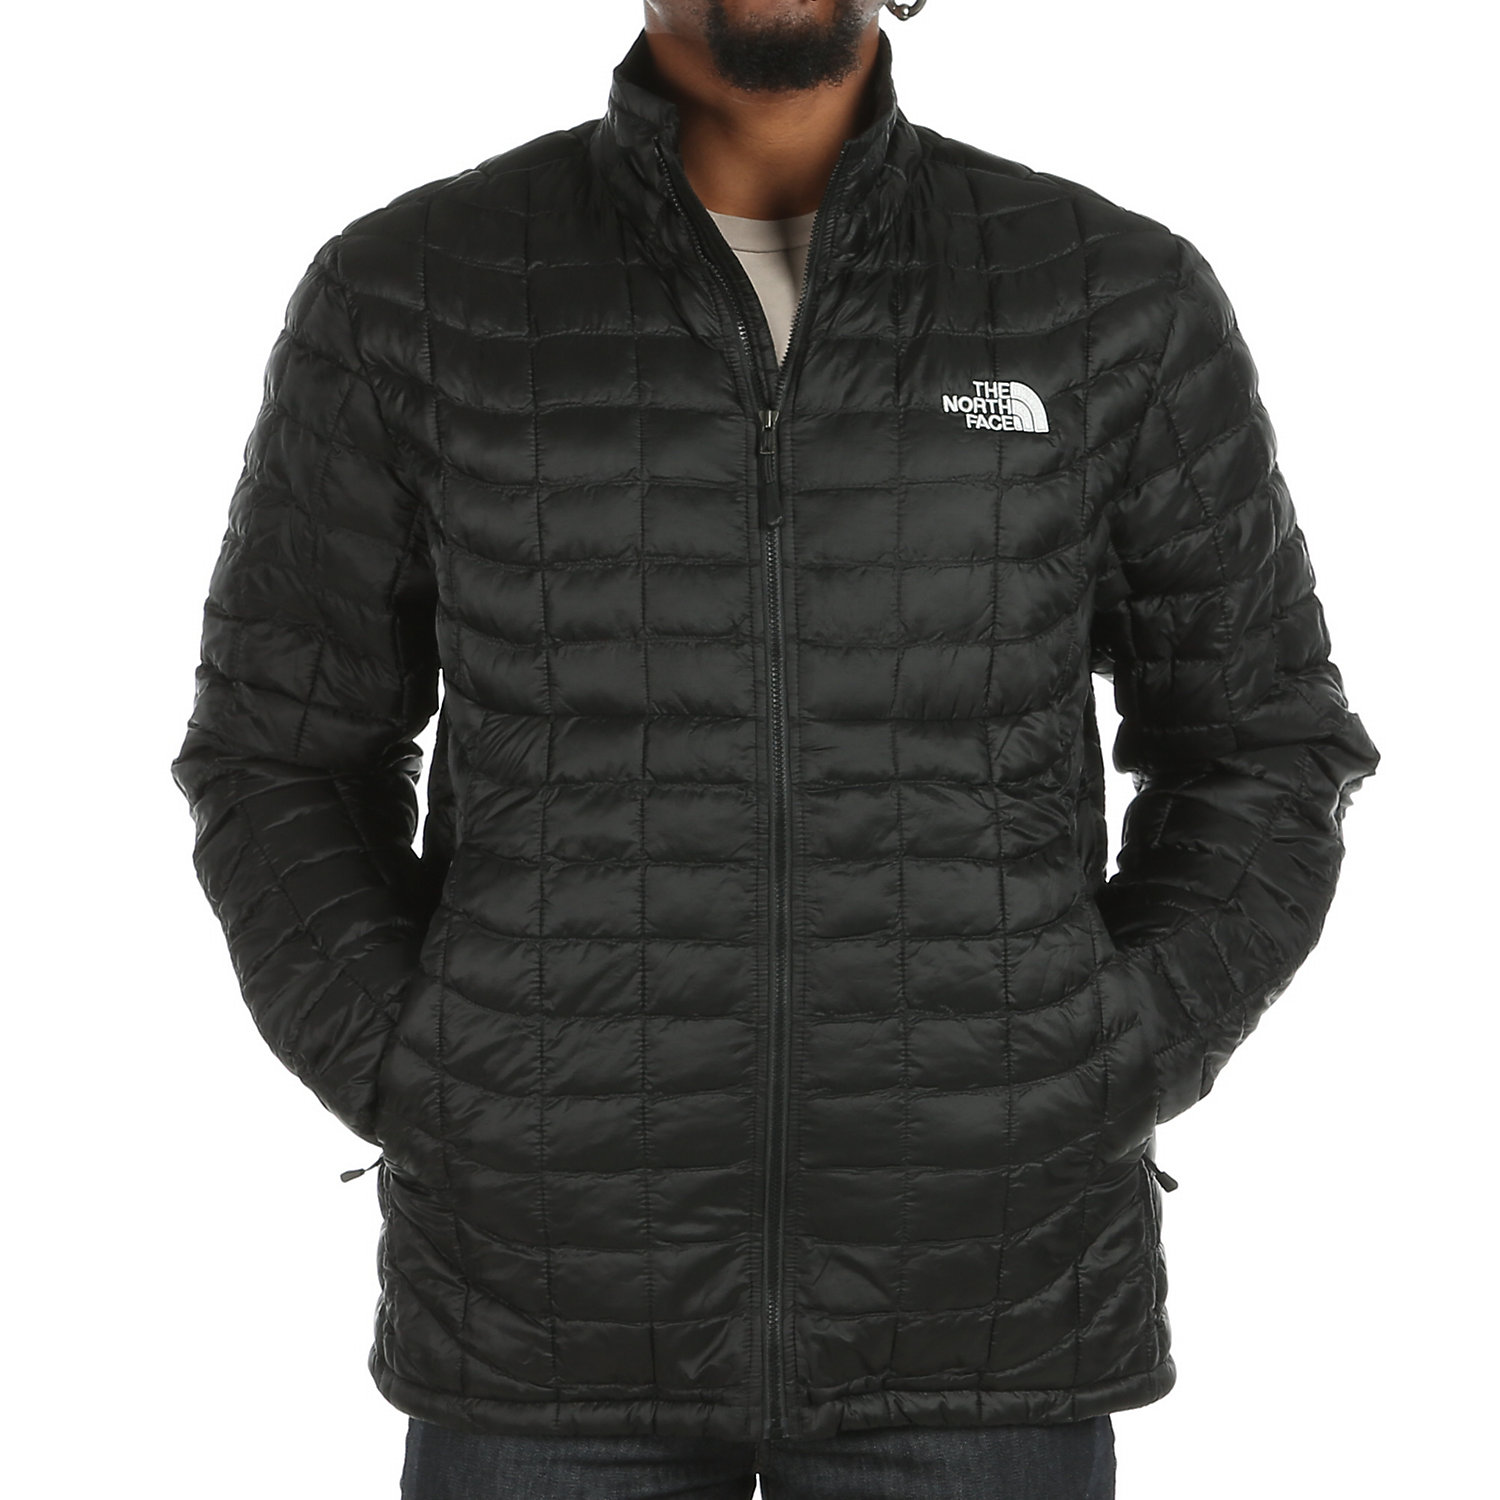 a3992bc2f The North Face Men's Thermoball Full Zip Jacket